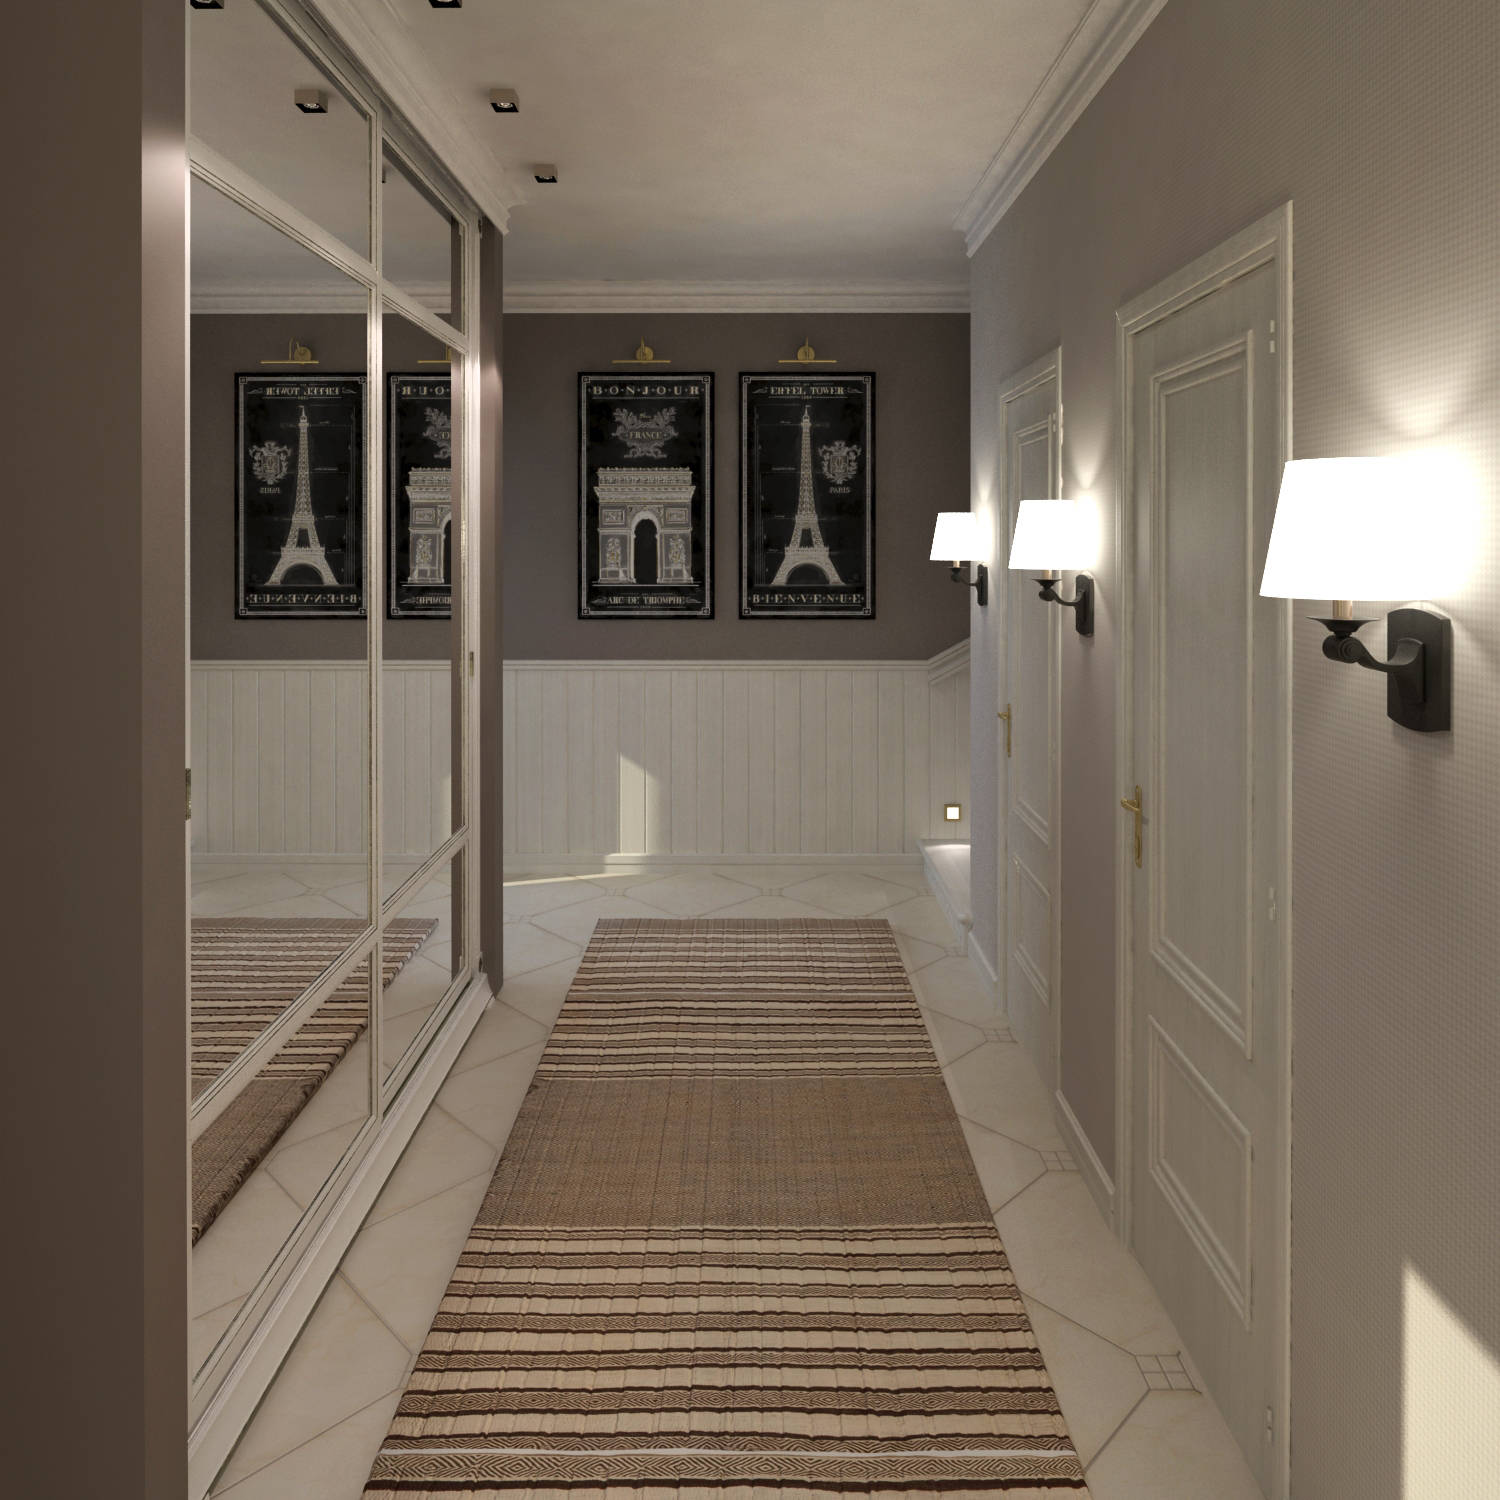 Townhouse №7